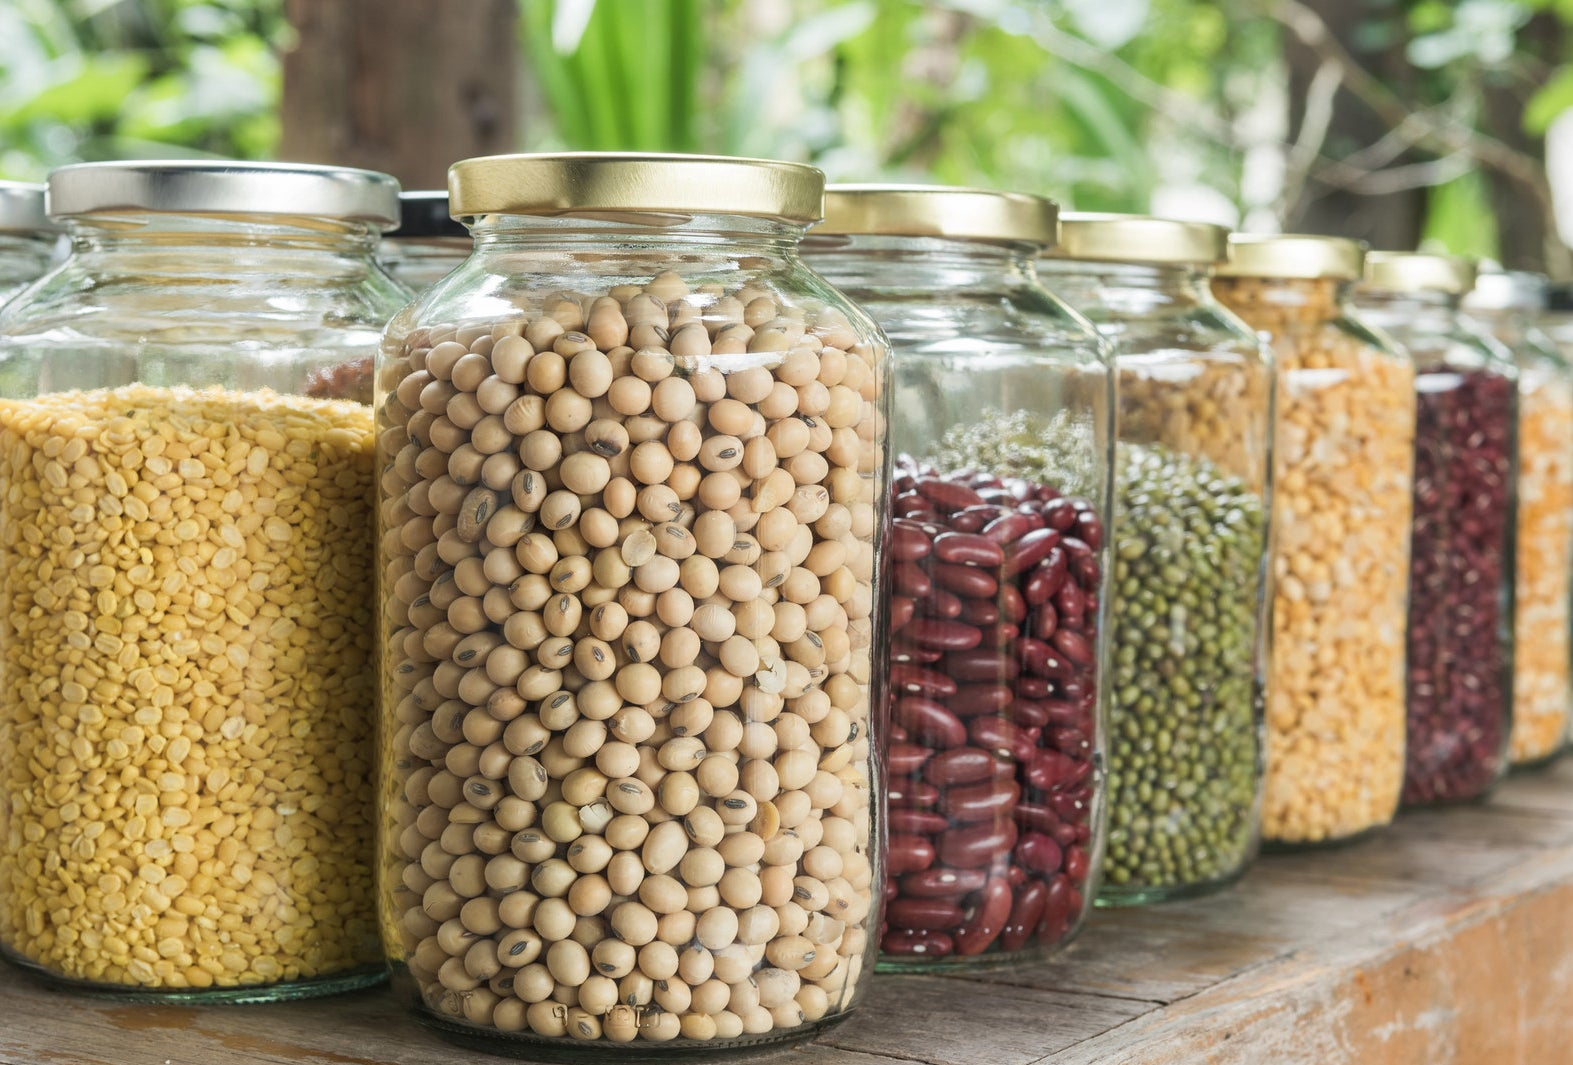 You can use dry beans and grains without soaking or cooking them first.